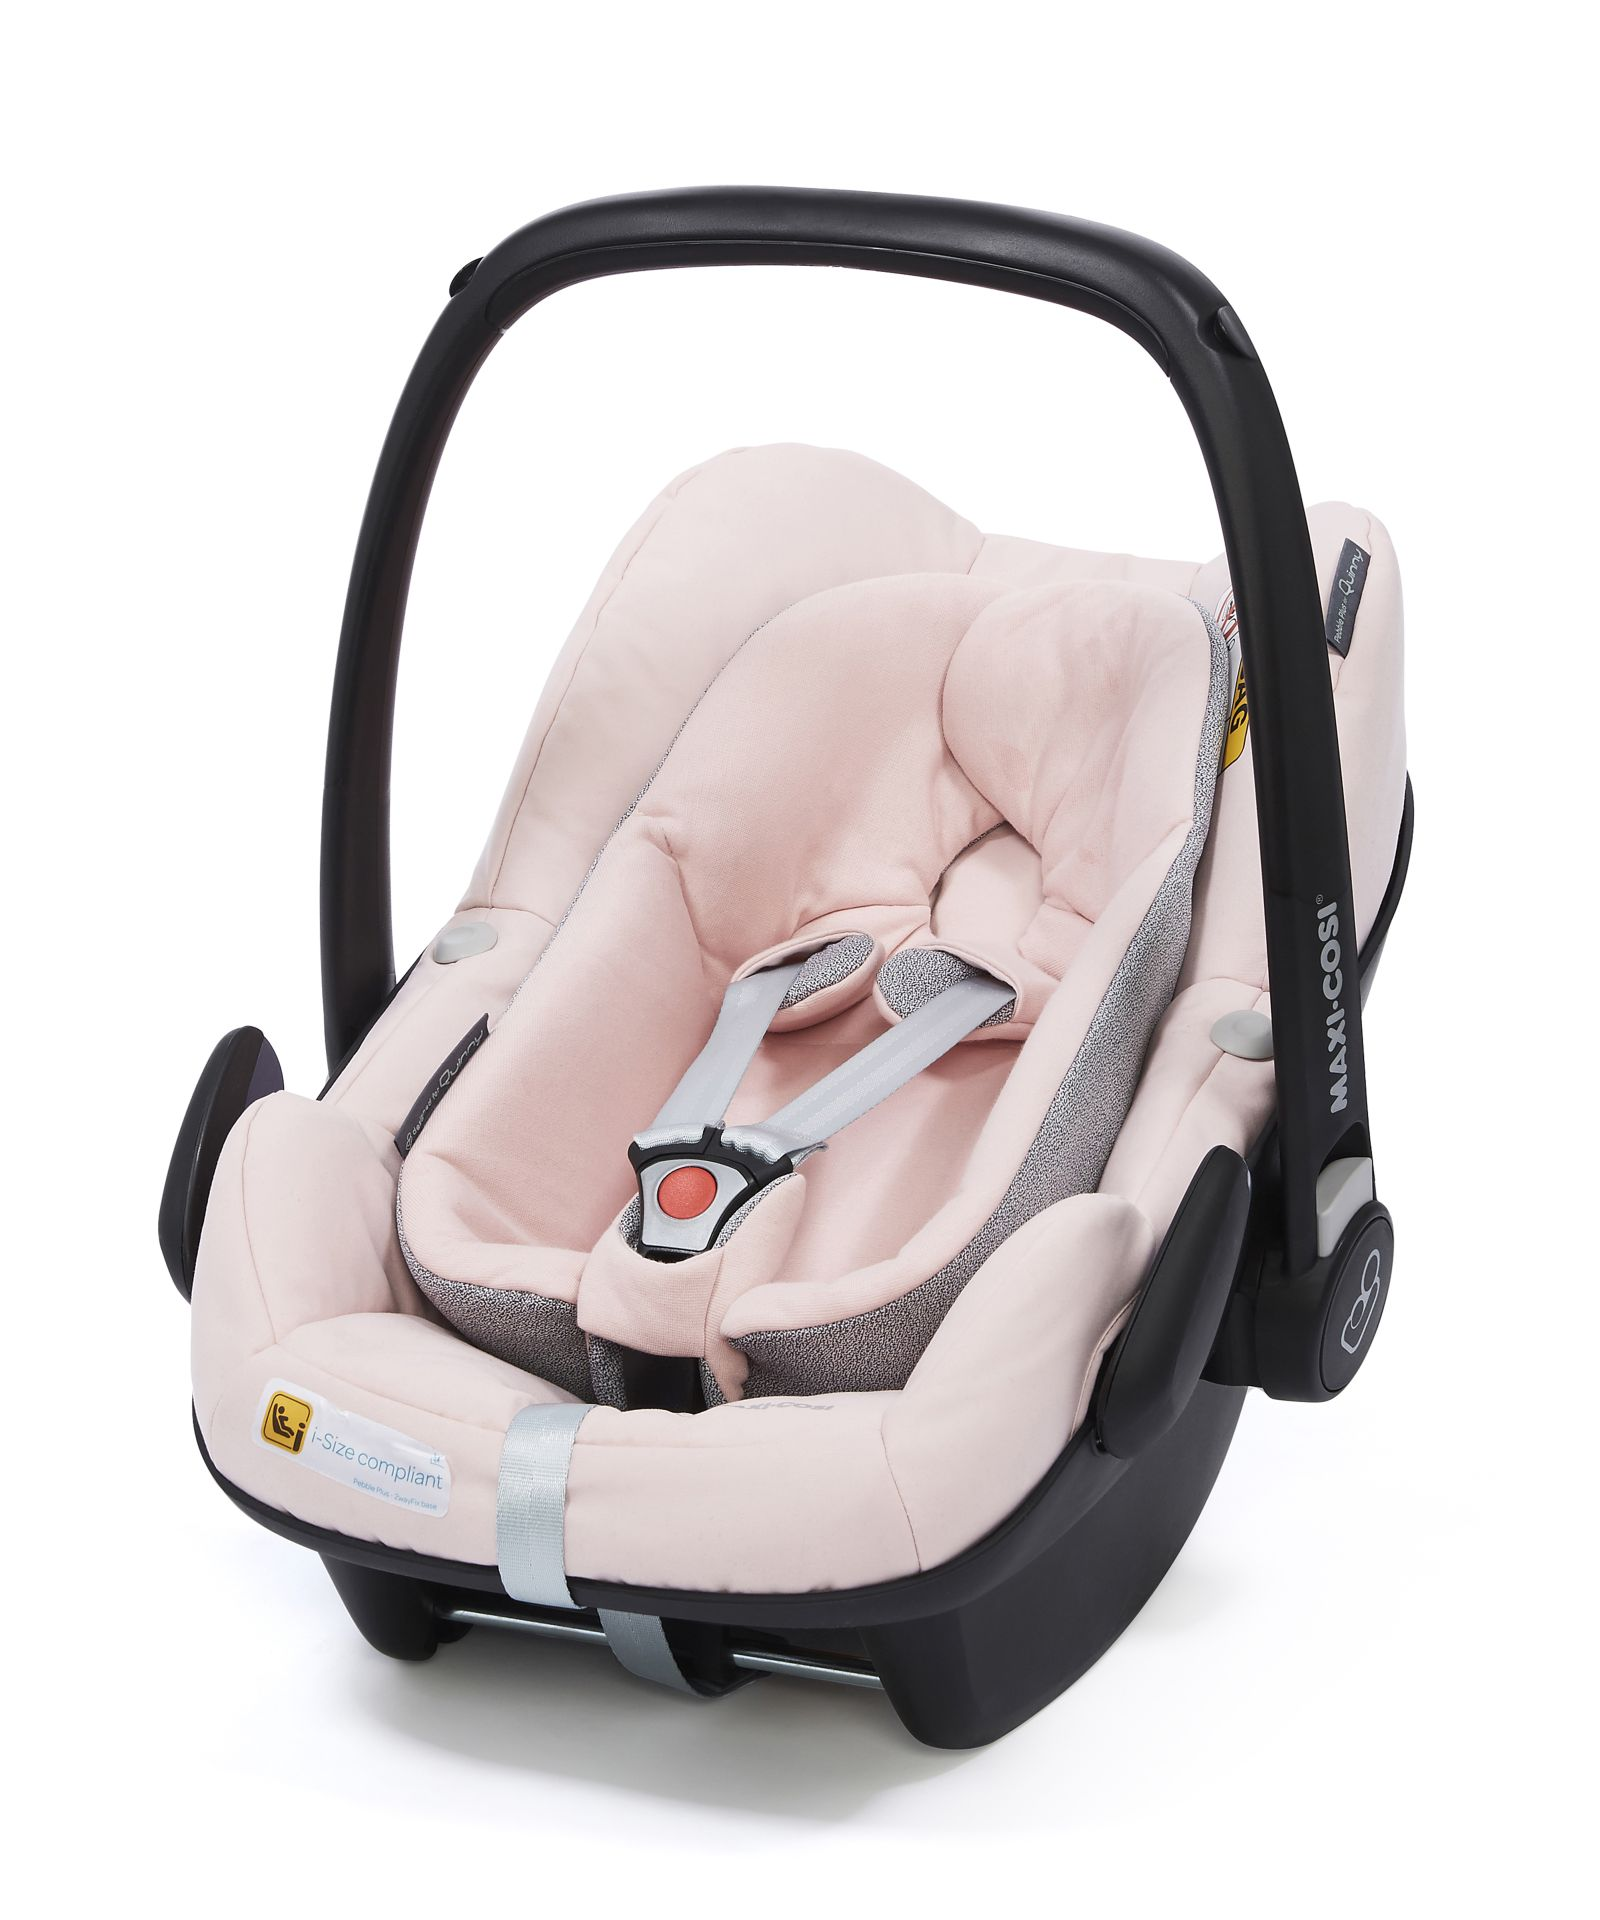 Britax Or Maxi Cosi Infant Car Seat